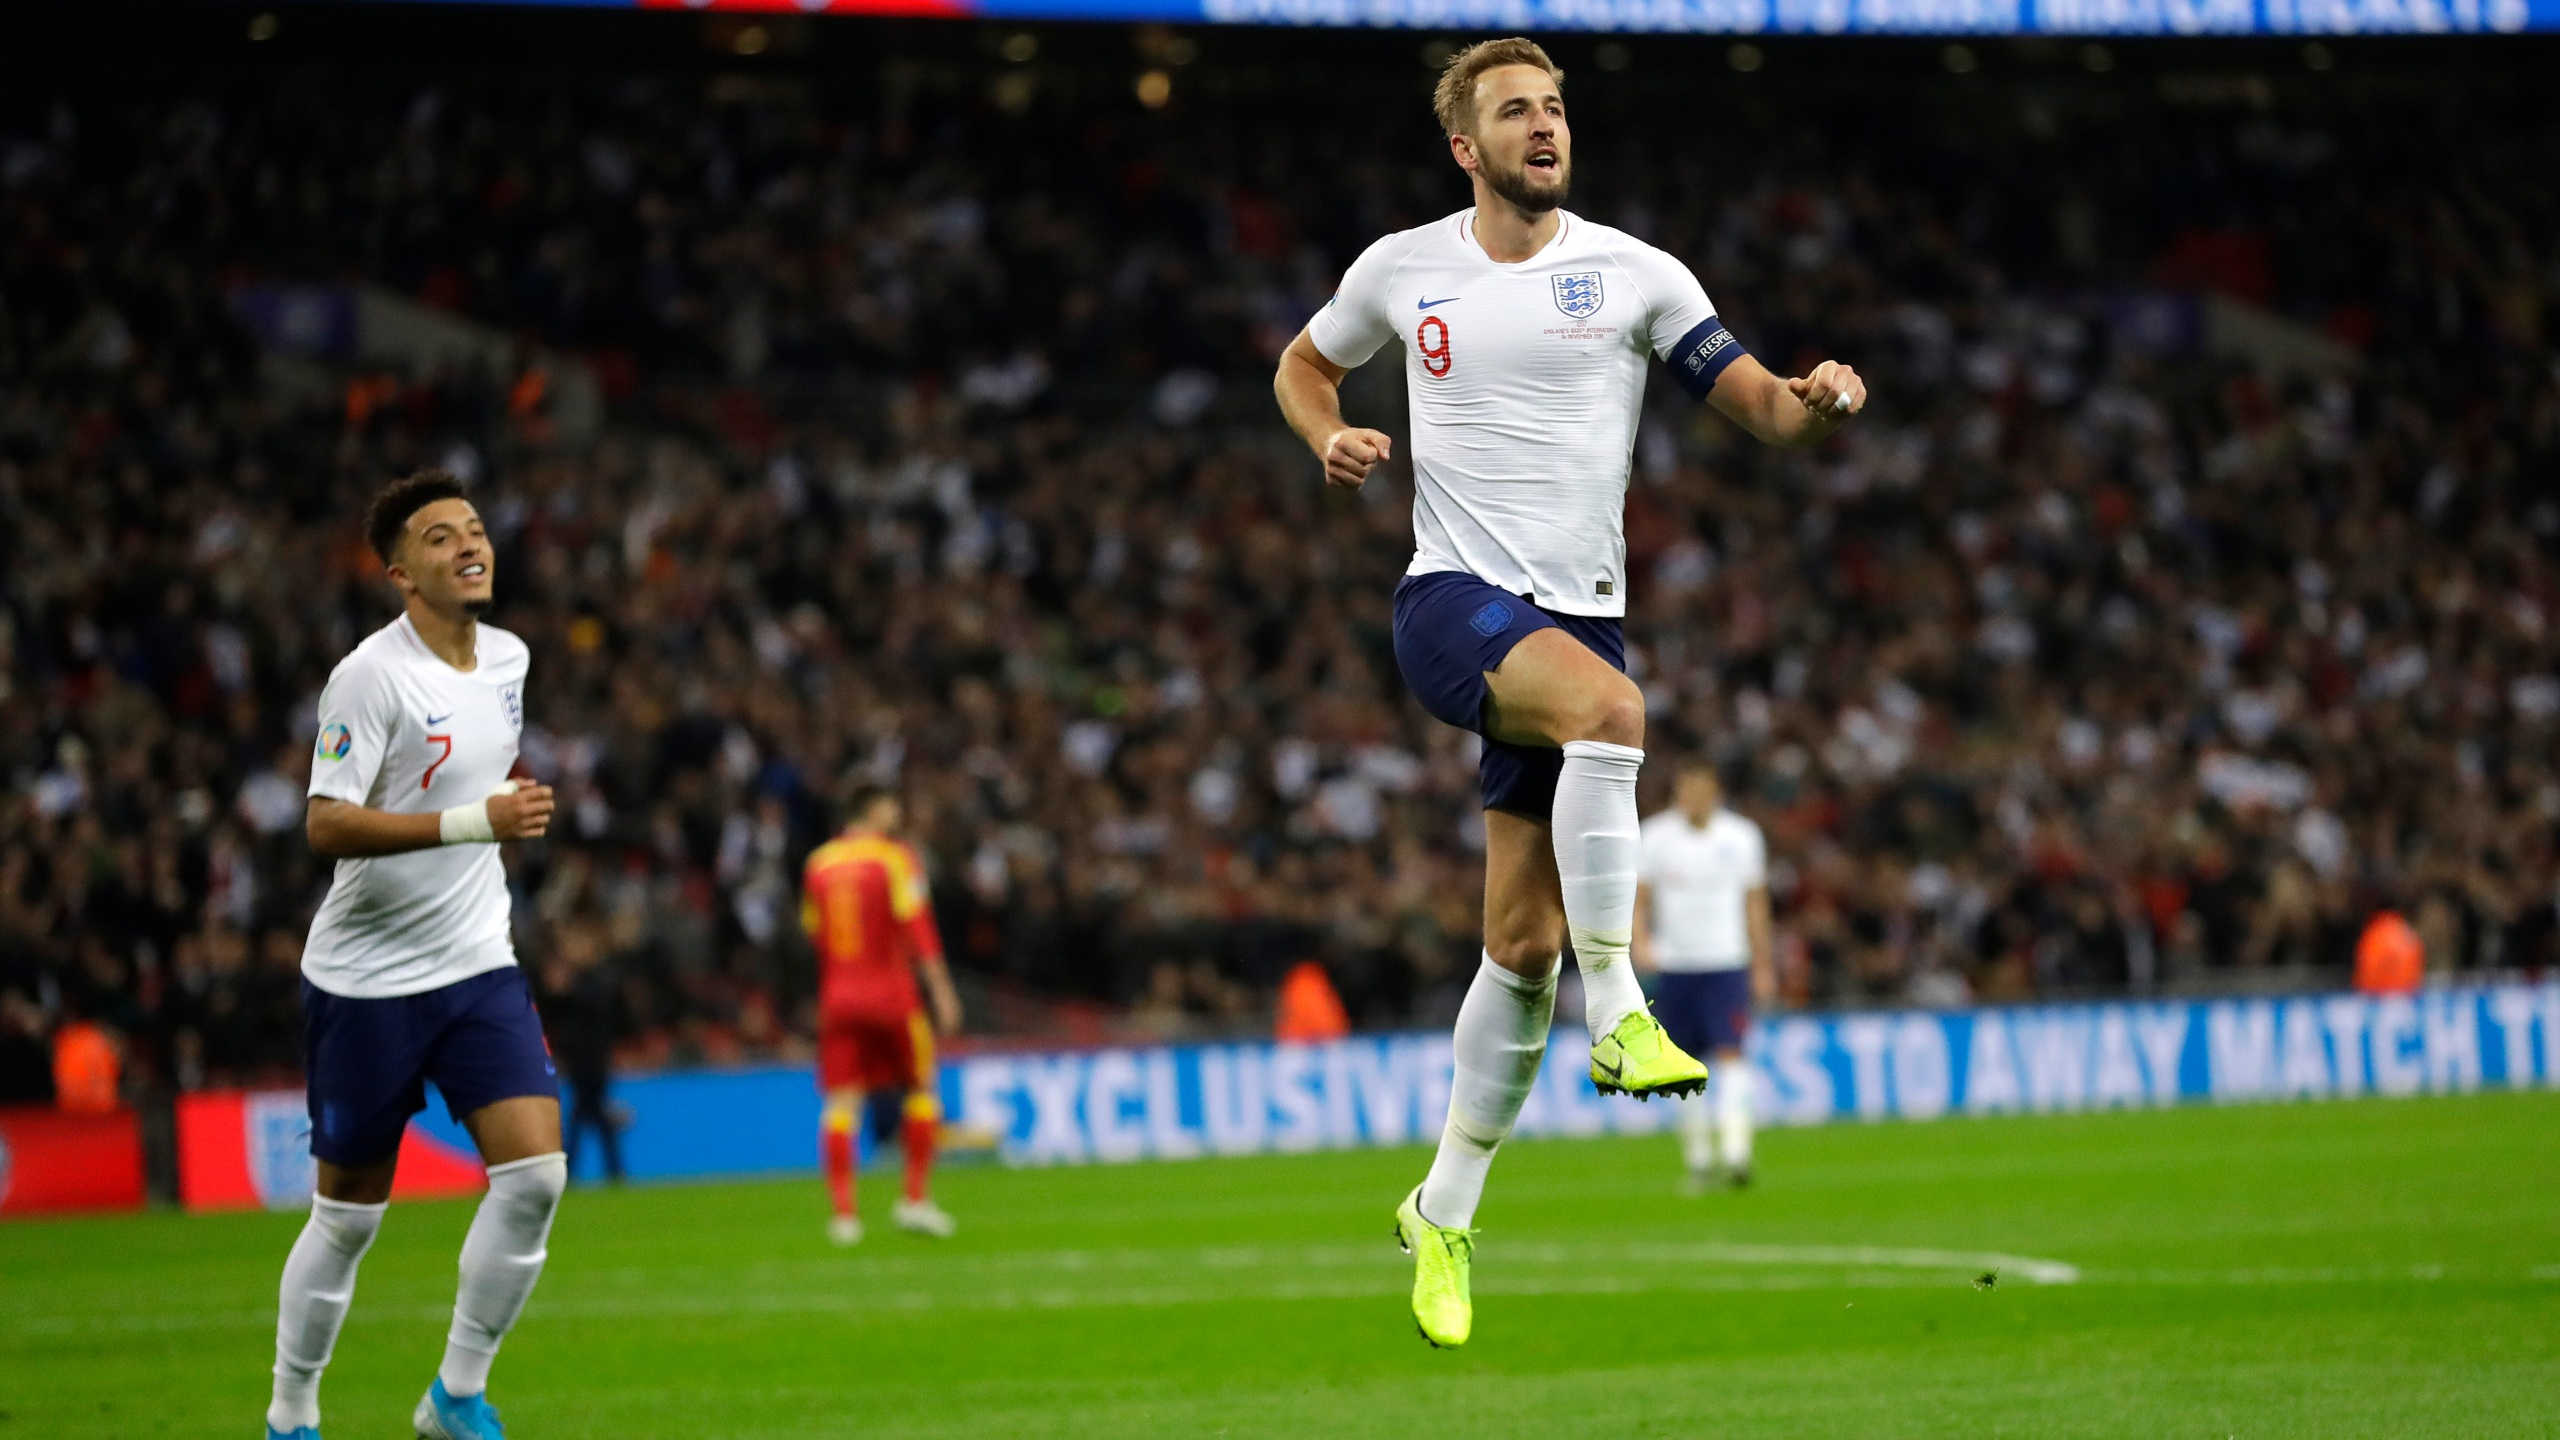 Calendrier Match Foot Euro 2020.Kane Nets Hat Trick And Helps England Seal Euro 2020 Spot Wvns